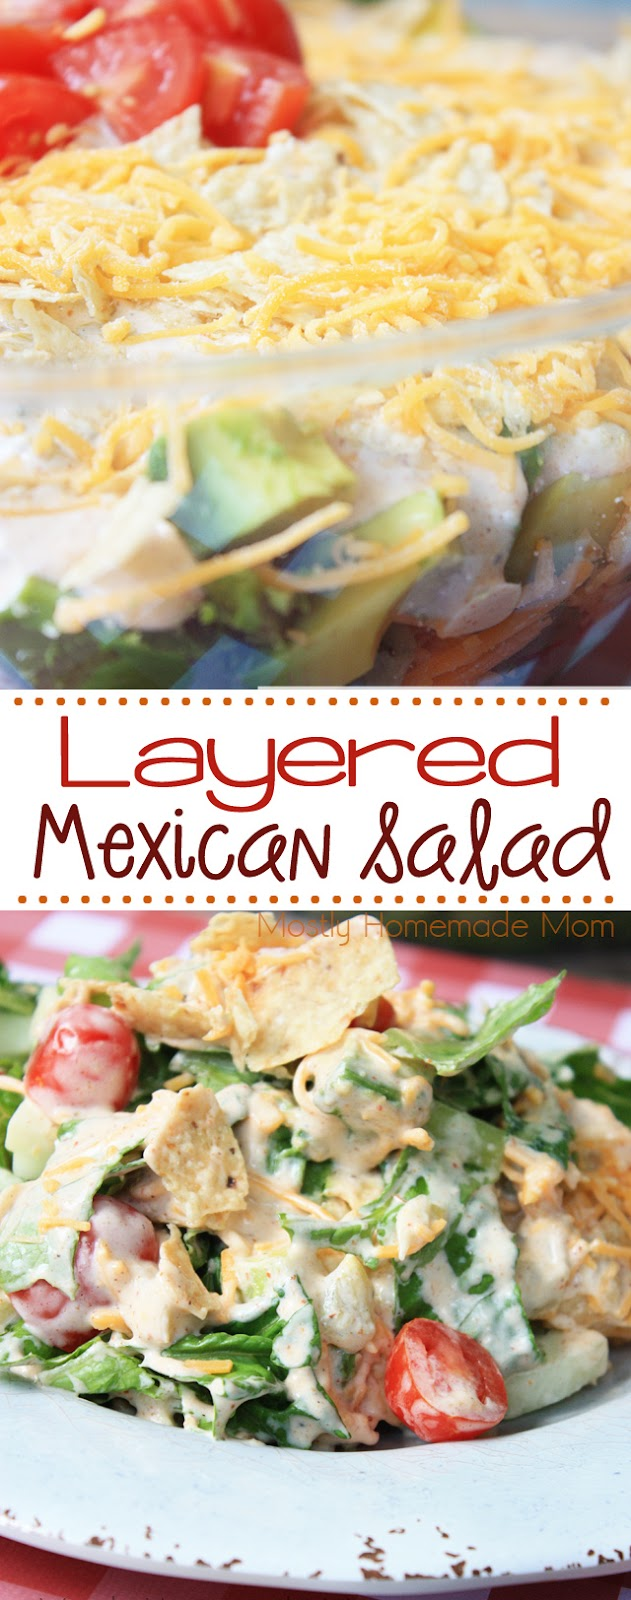 Layered Mexican Salad with taco dip dressing recipe